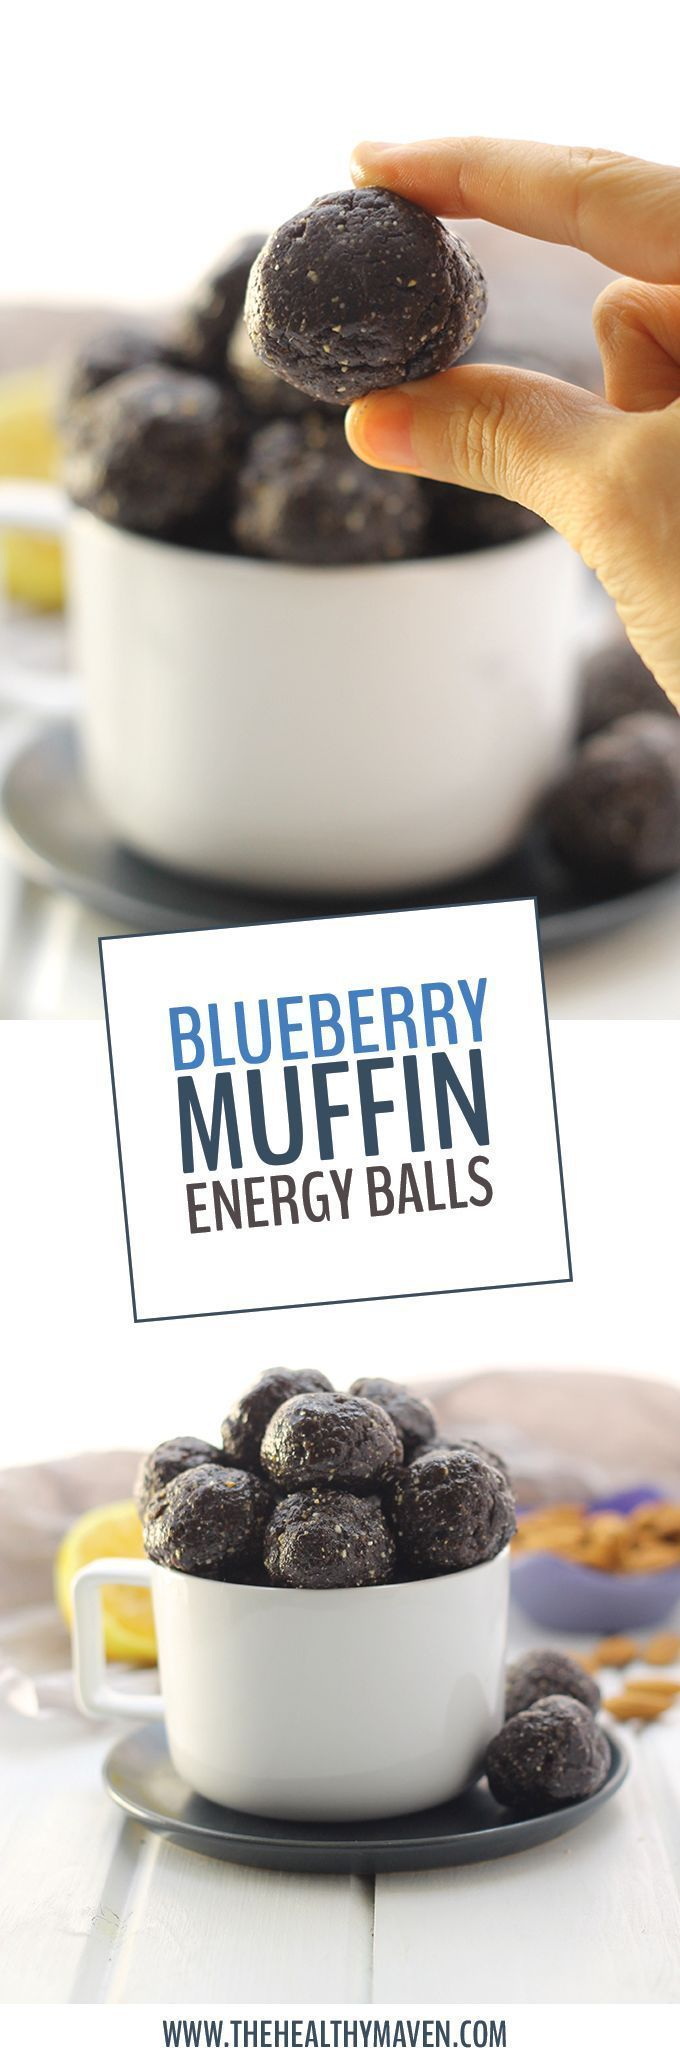 Want the taste of a  sweet and delicious blueberry muffin, without all of the gunk? Make these Raw Blueberry Muffin Energy Balls for a nutritious snack that doesn't skimp on the flavor! They're the perfect no-bake recipe for a snack on the run or for a lunch time sweet.